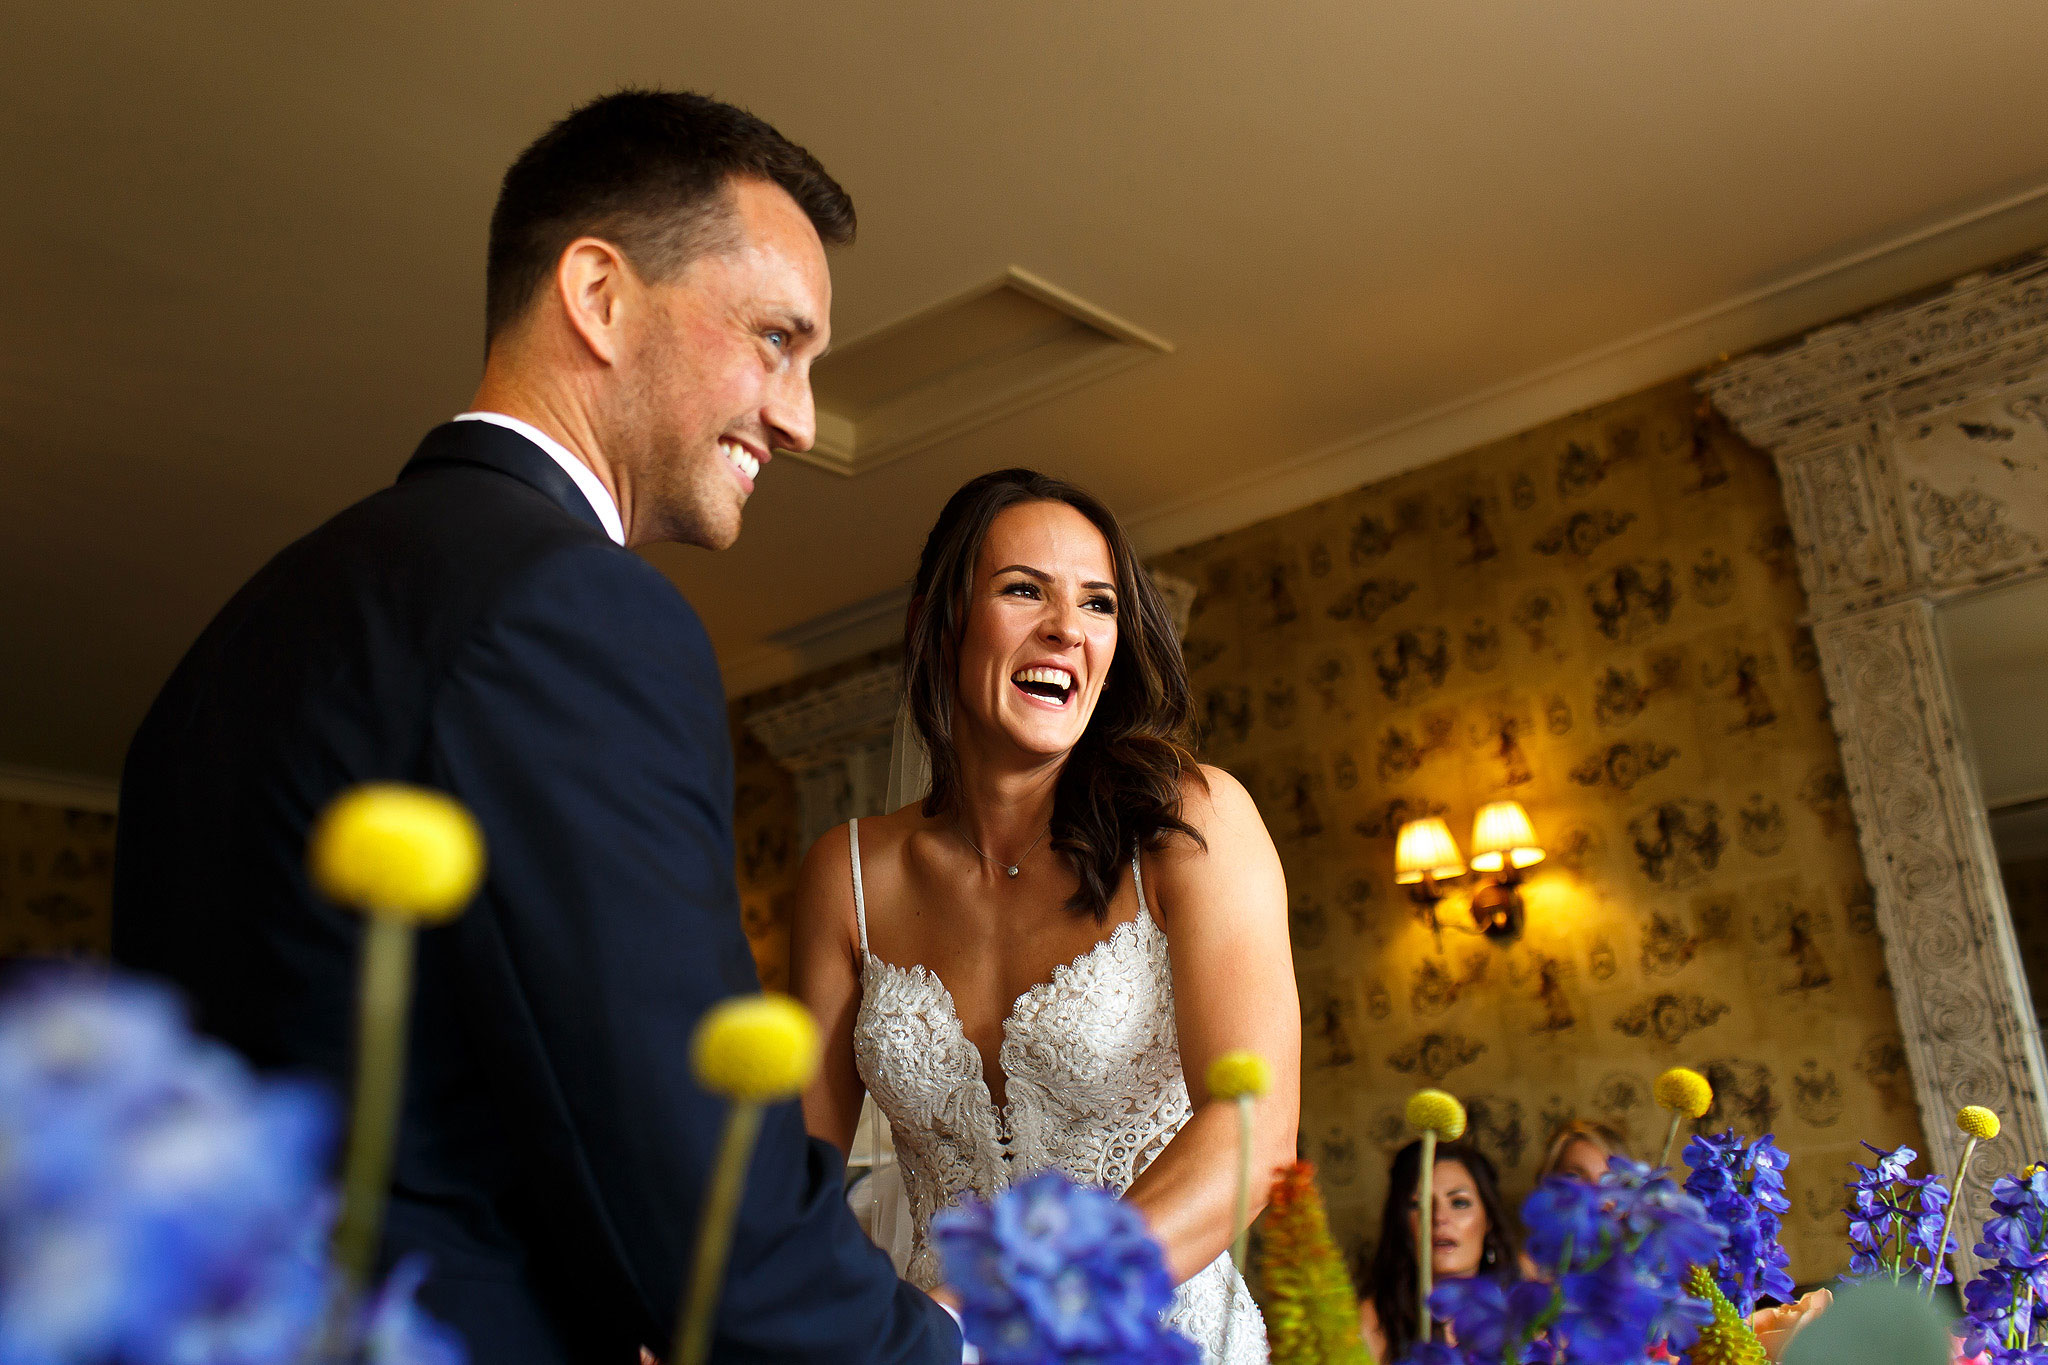 Bride and groom laughing during wedding ceremony at the Shireburn Arms